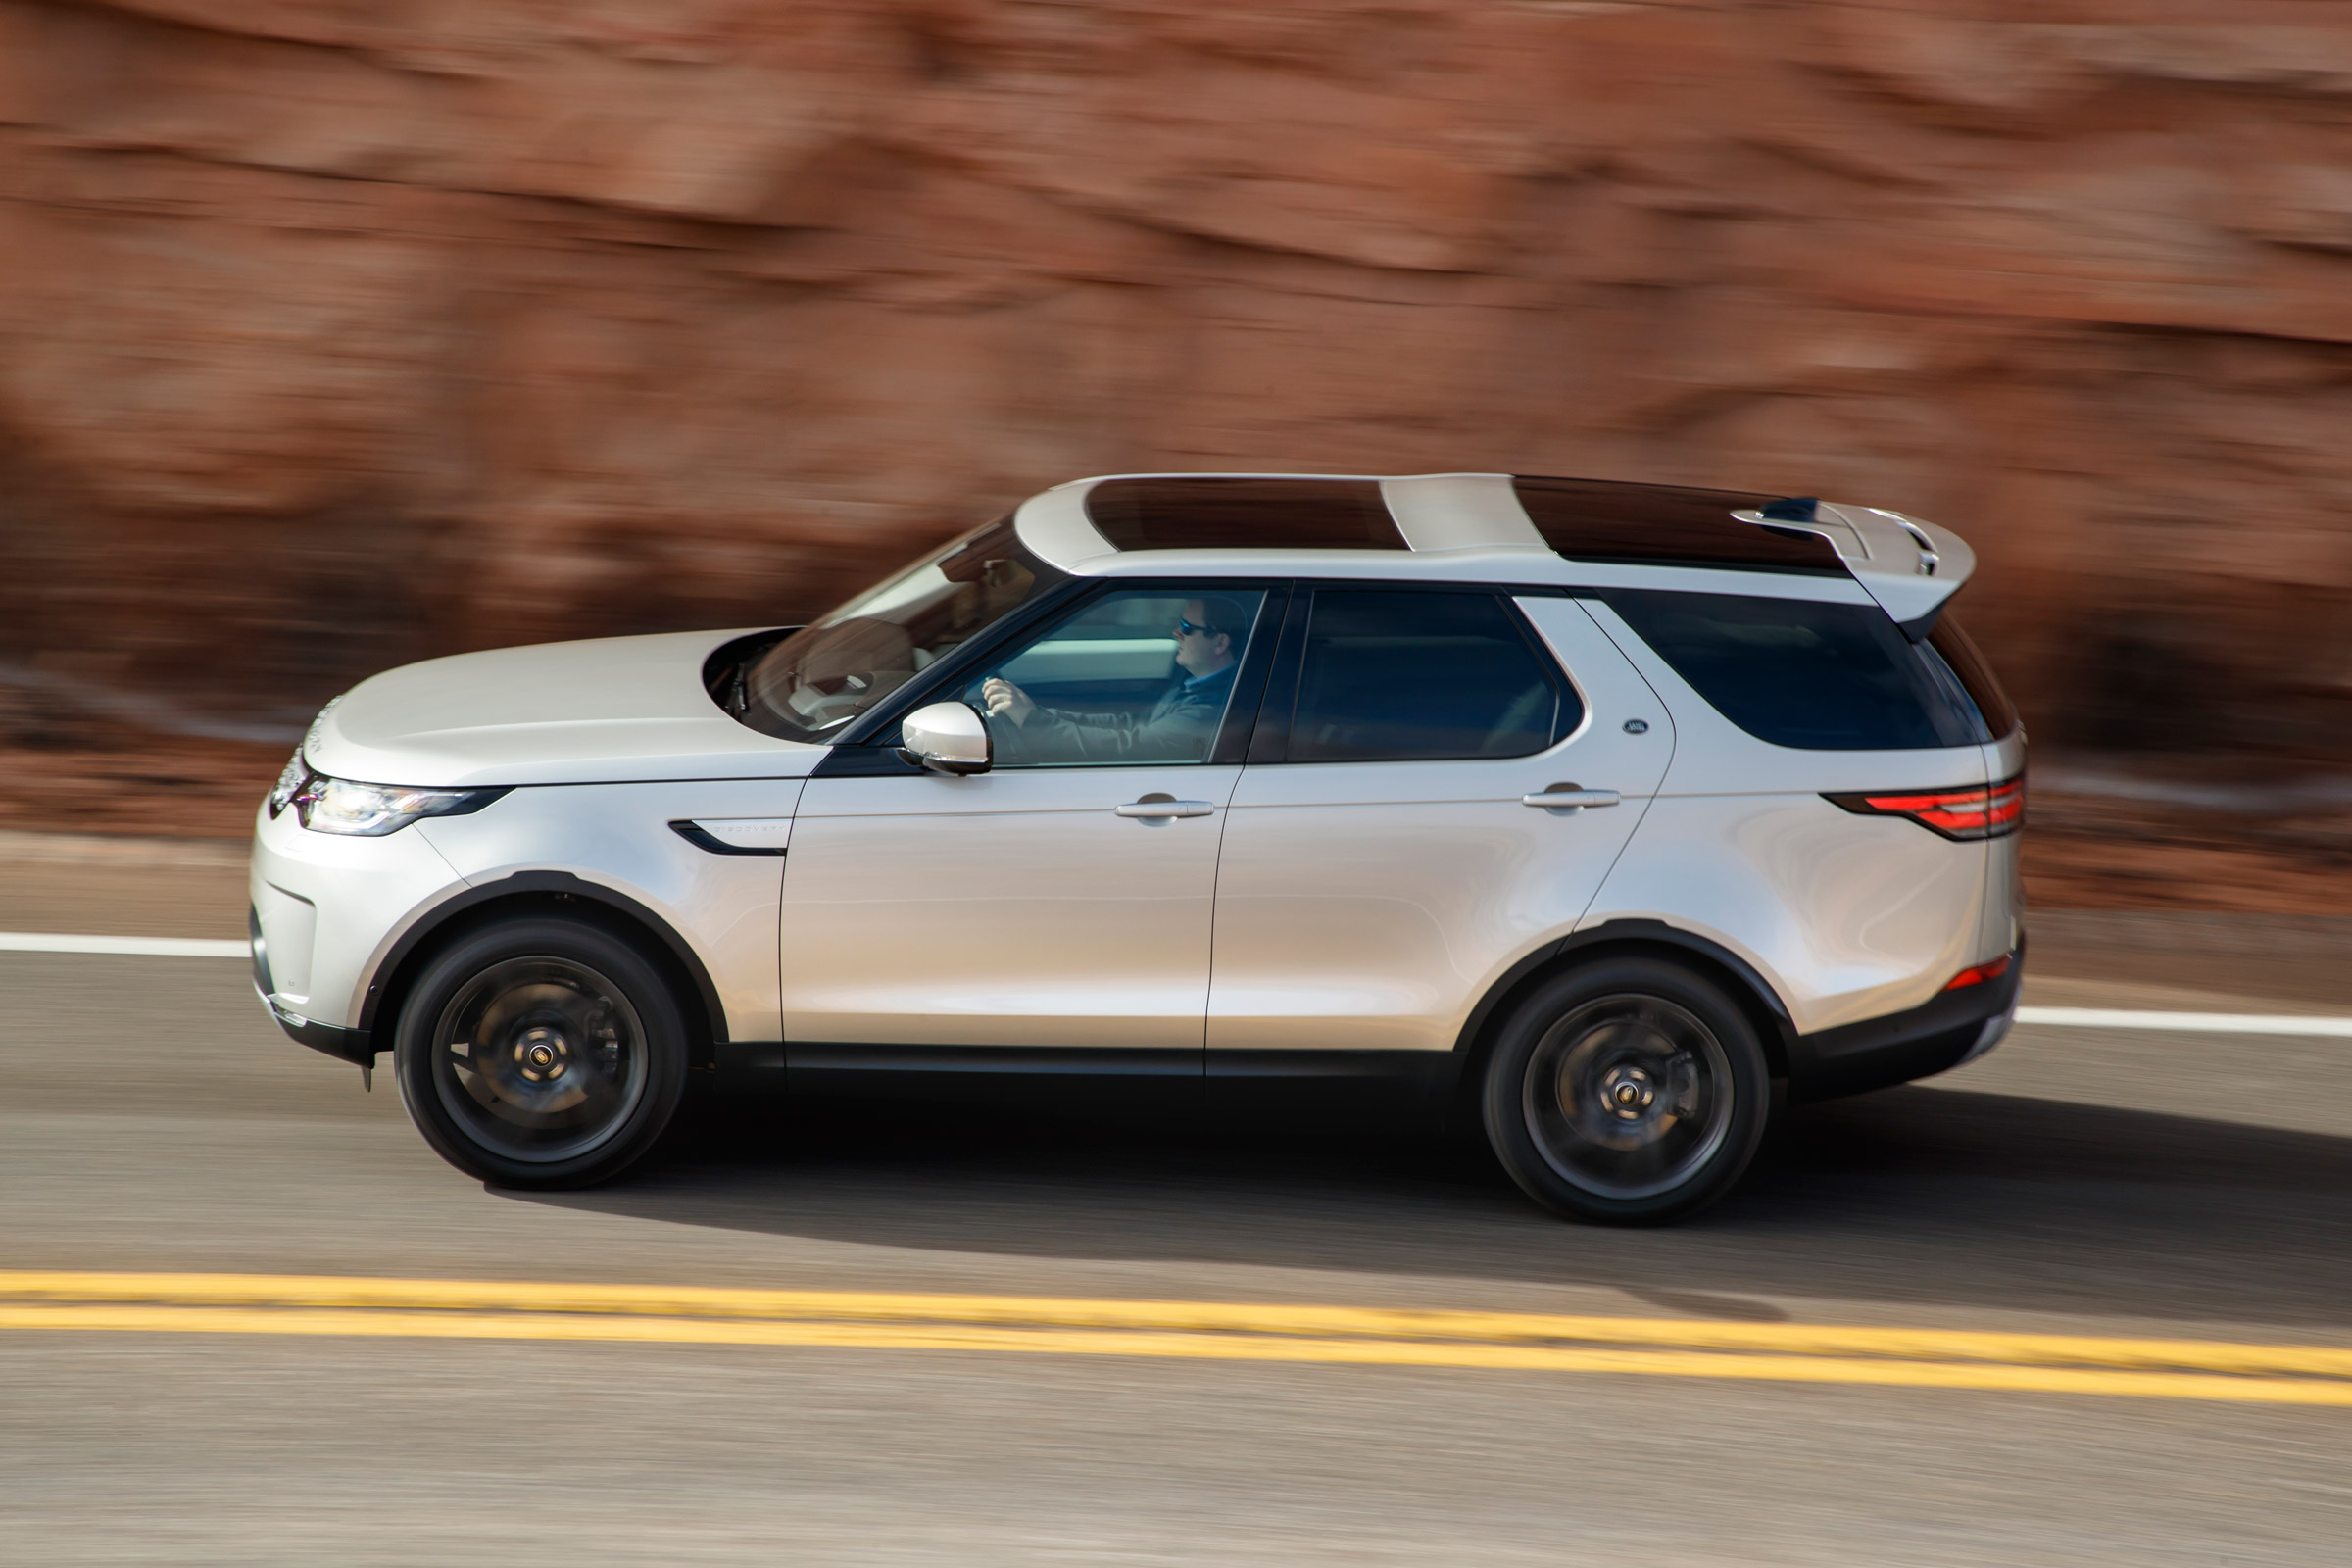 2017 Land Rover Discovery Test Drive Side View (Photo 16 of 17)